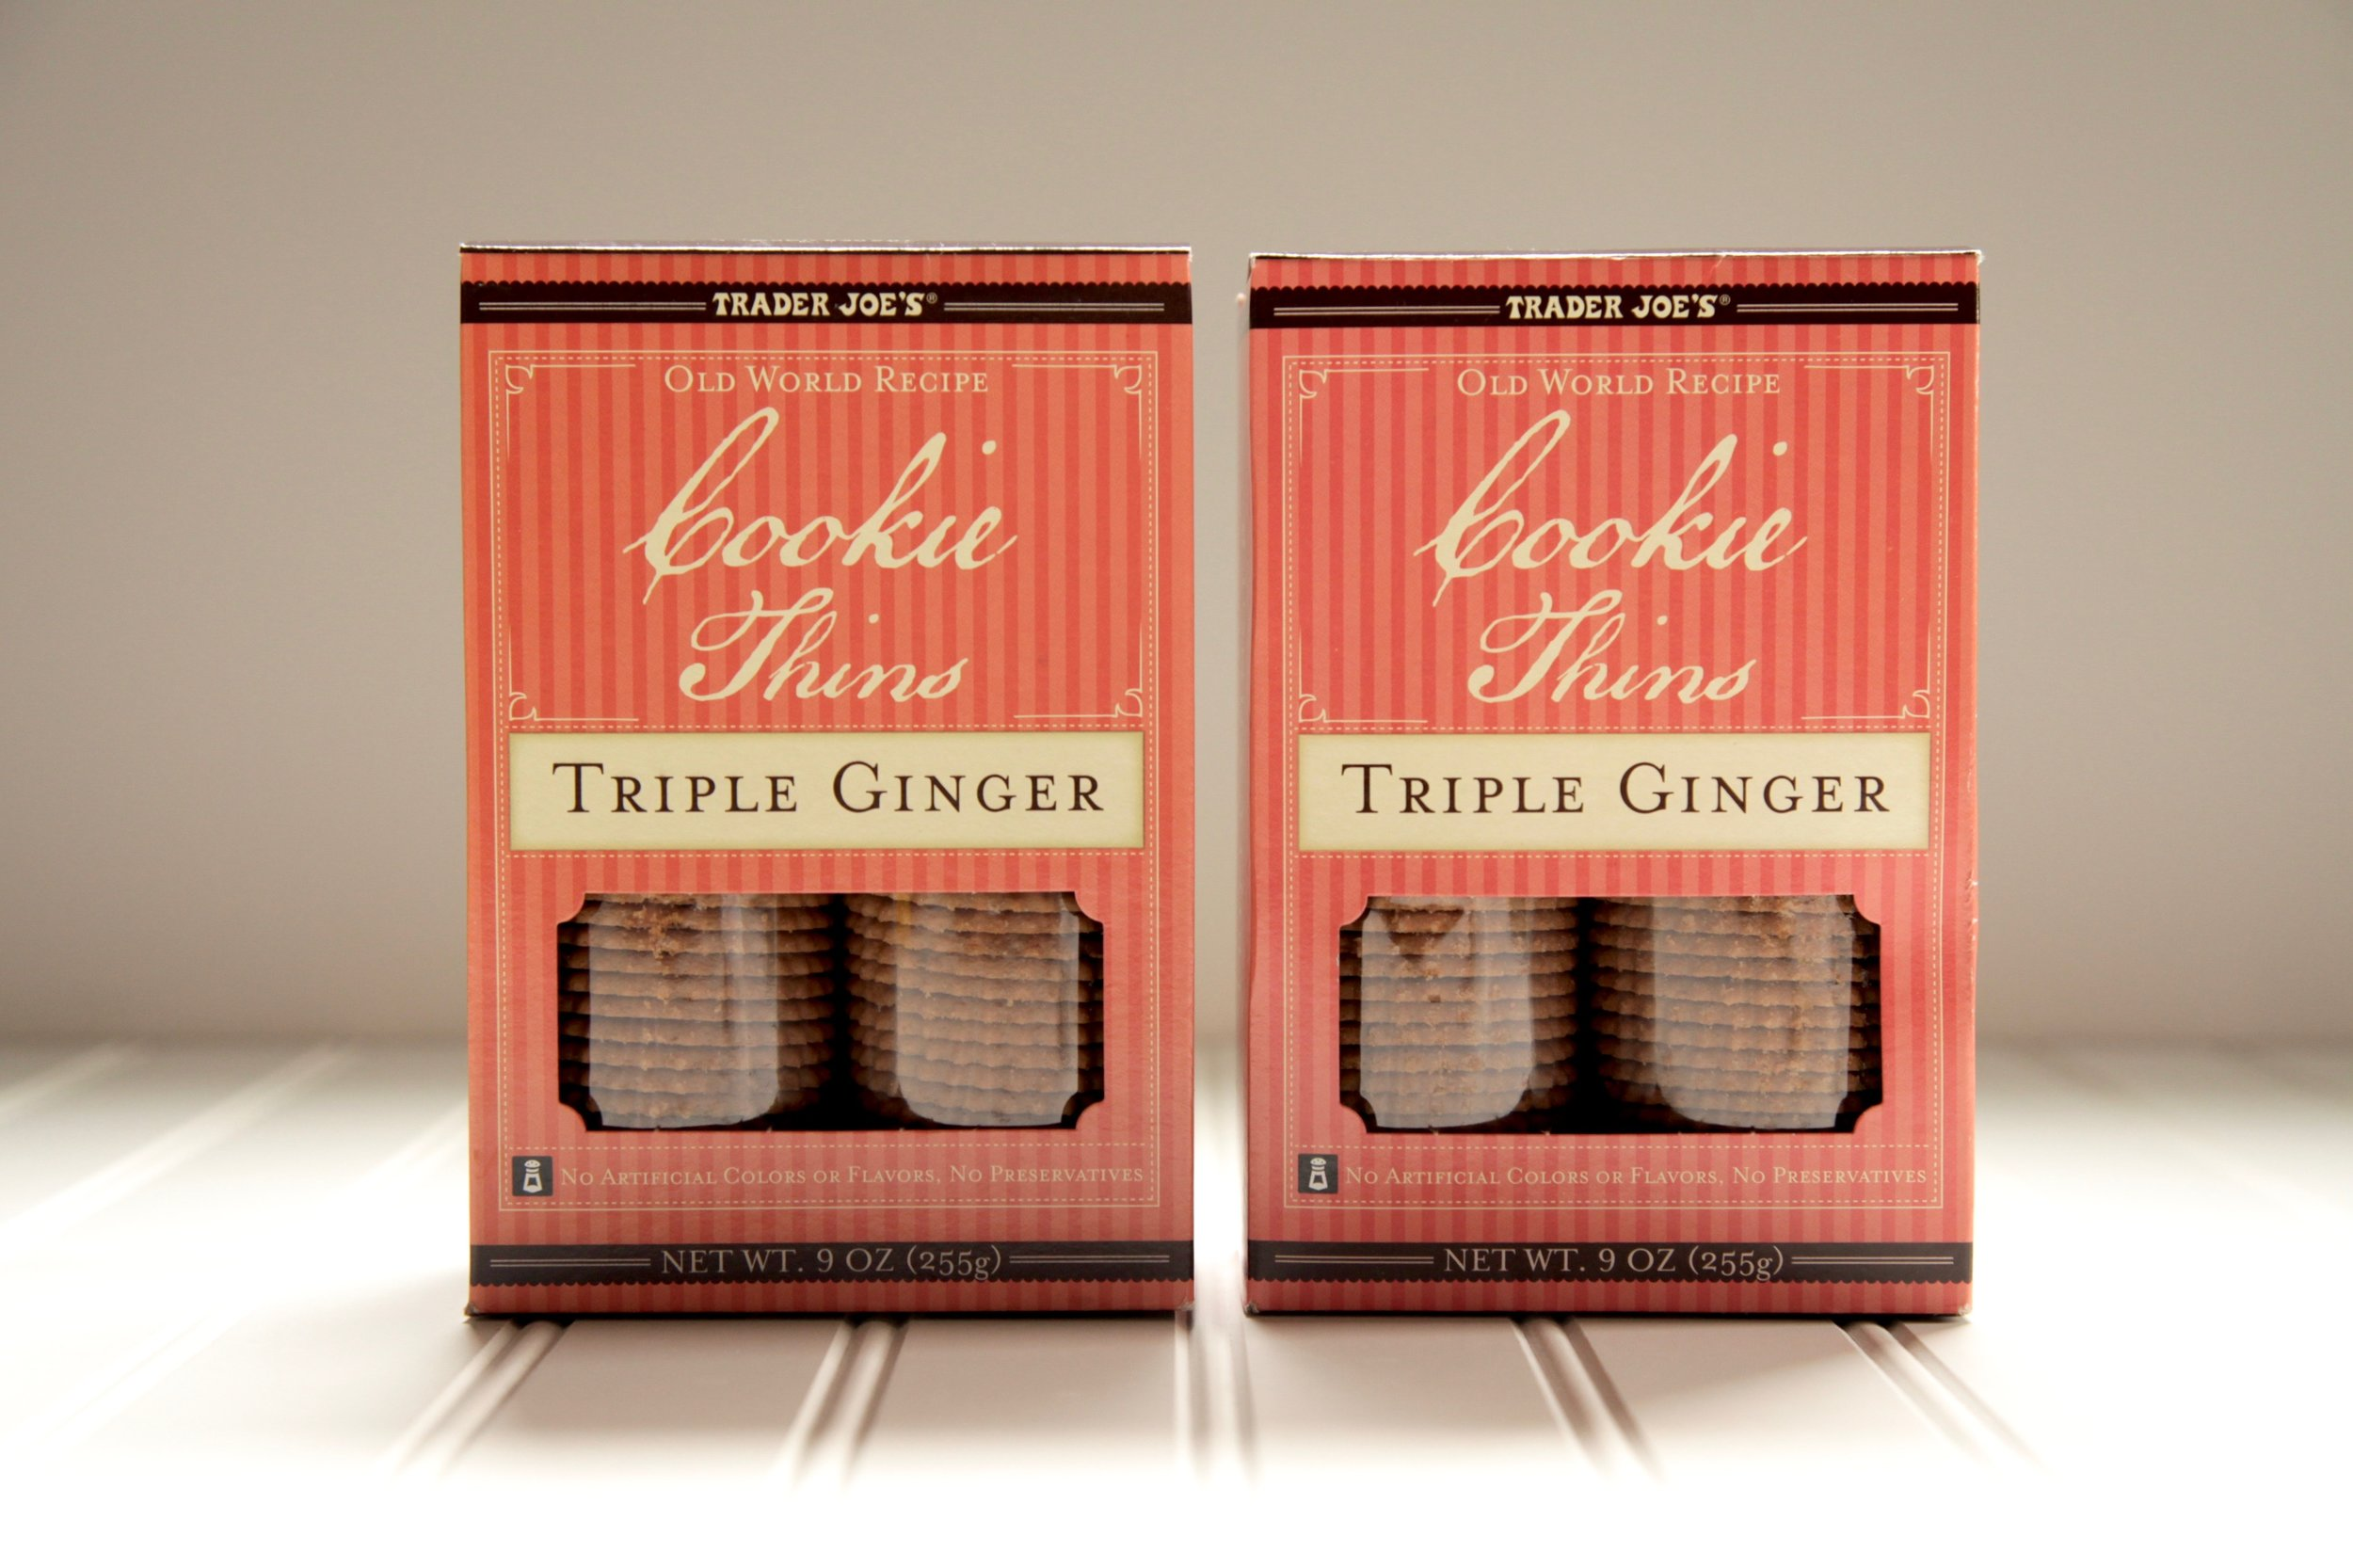 And the winning cookie is....TRADER JOE'S COOKIE THINGS in TRIPLE GINGER (don't fret, if you don't live near a Trader Joe's Anna's ginger things are equally delish and available all over the country!